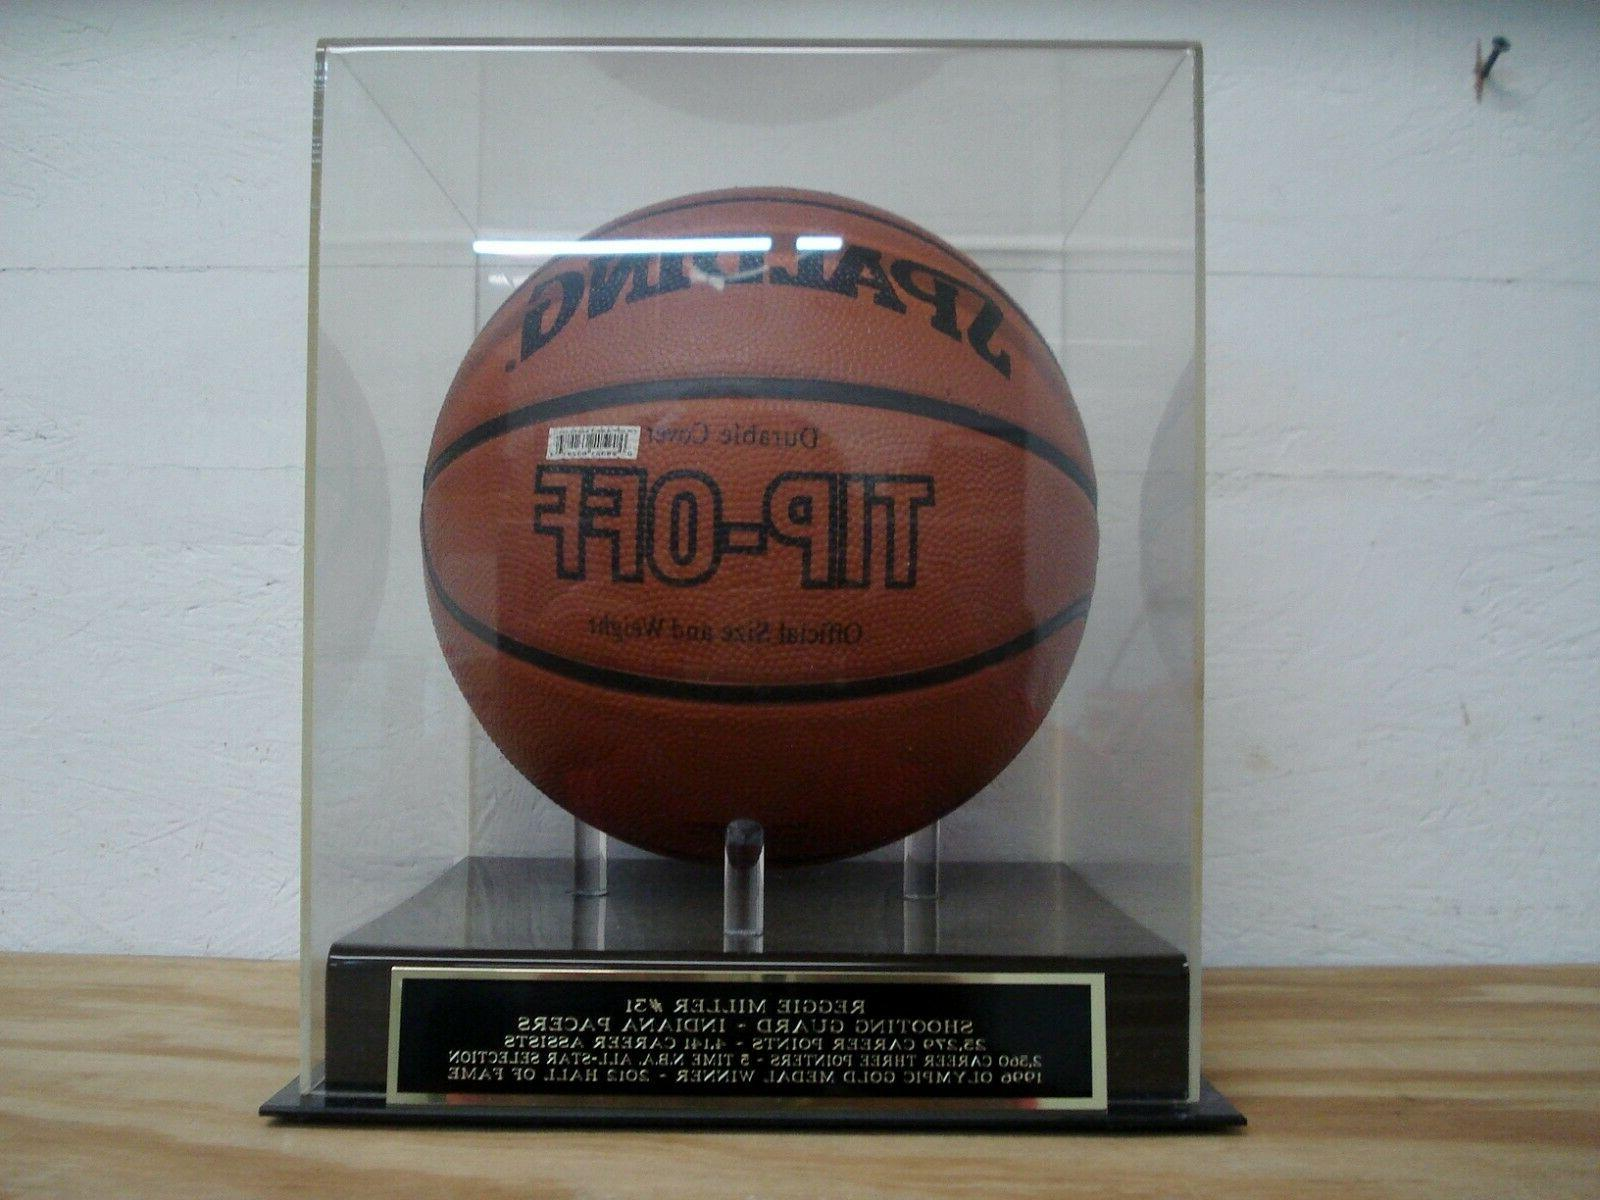 basketball display case with a reggie miller